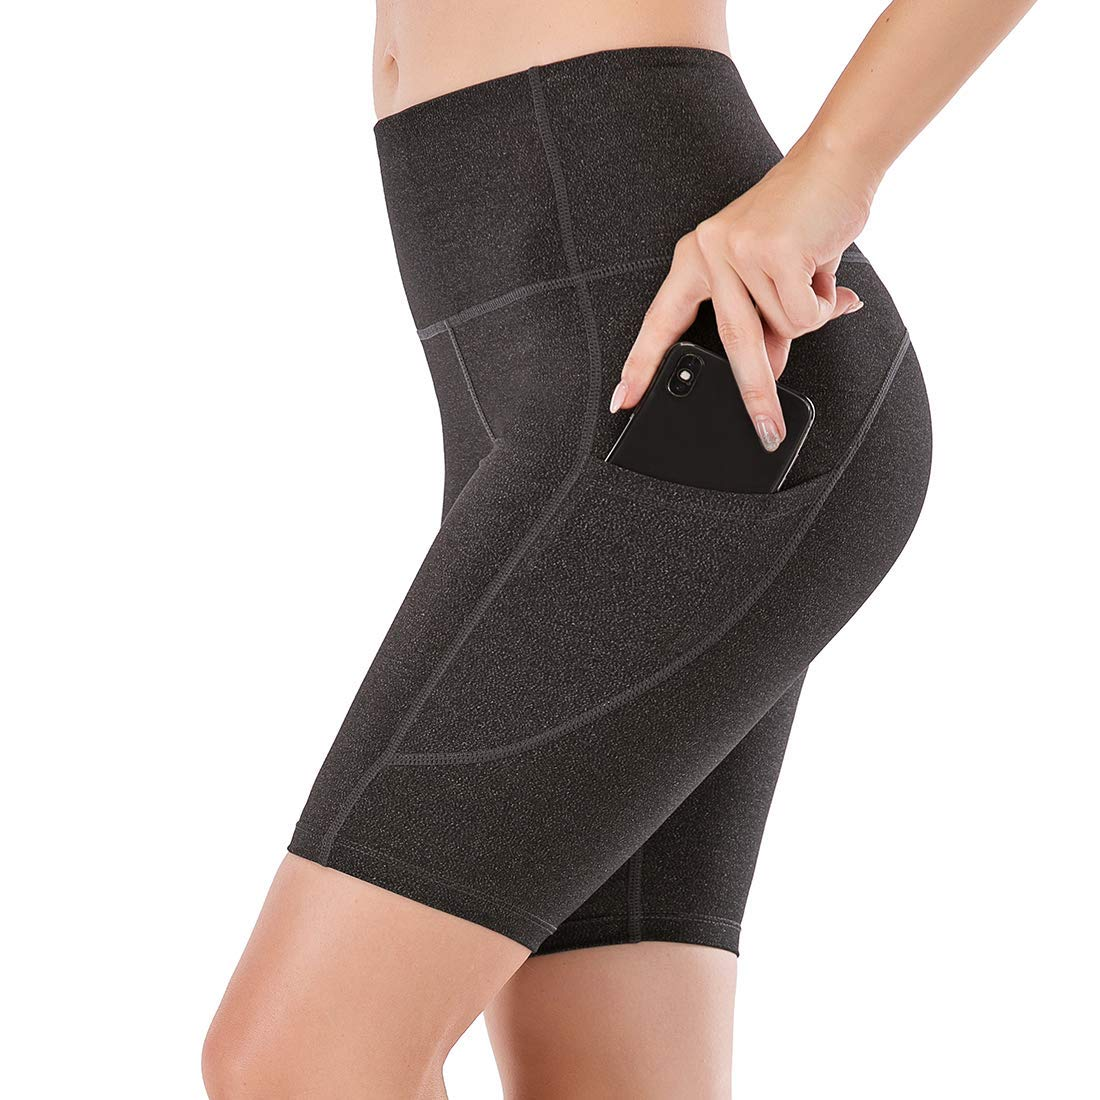 """Lianshp Yoga Shorts with Pockets for Women High Waist Tummy Control Athletic Workout Running Shorts 8"""""""